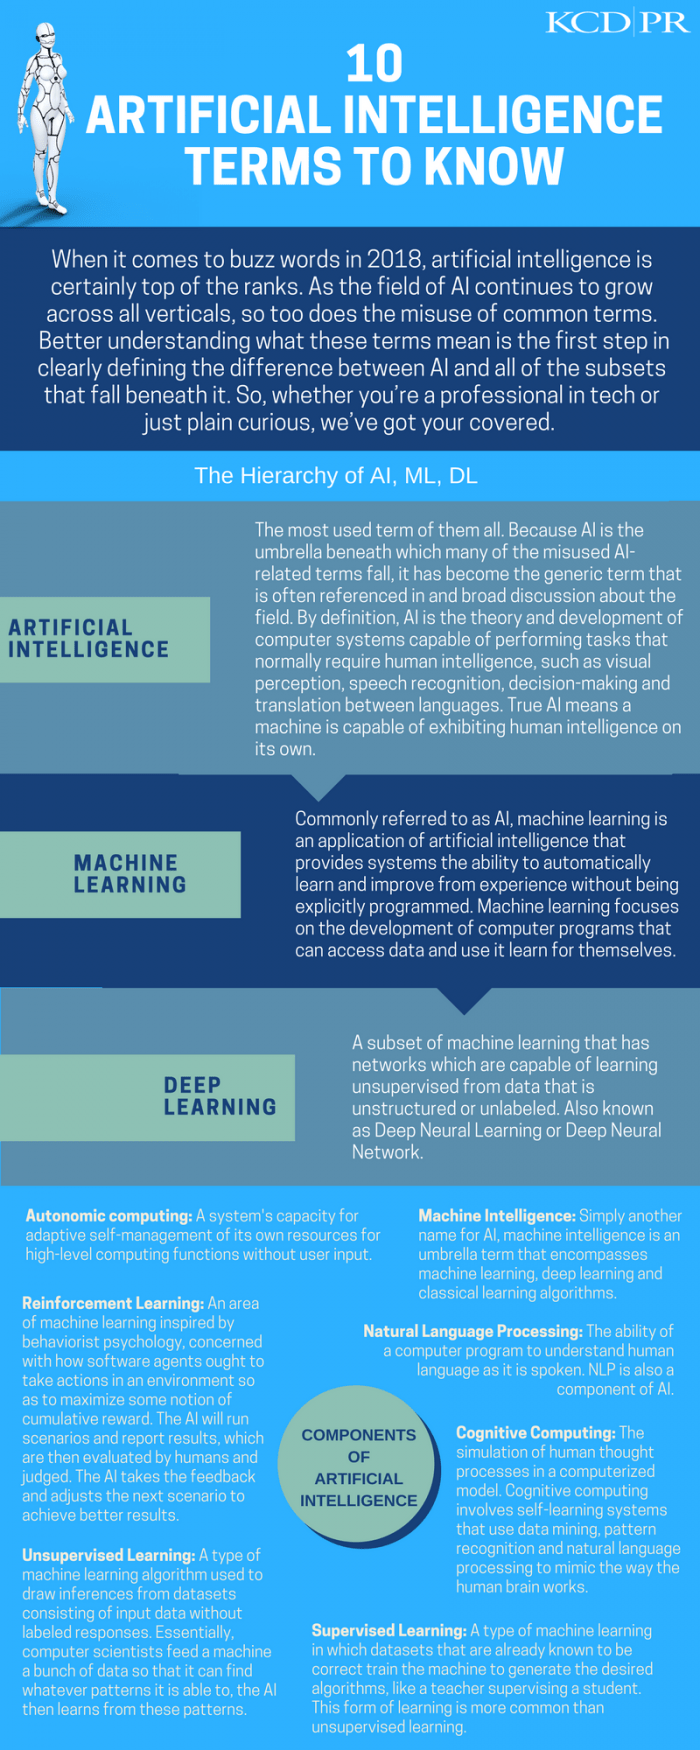 KCD PR 10 Artificial Intelligence Terms to Know